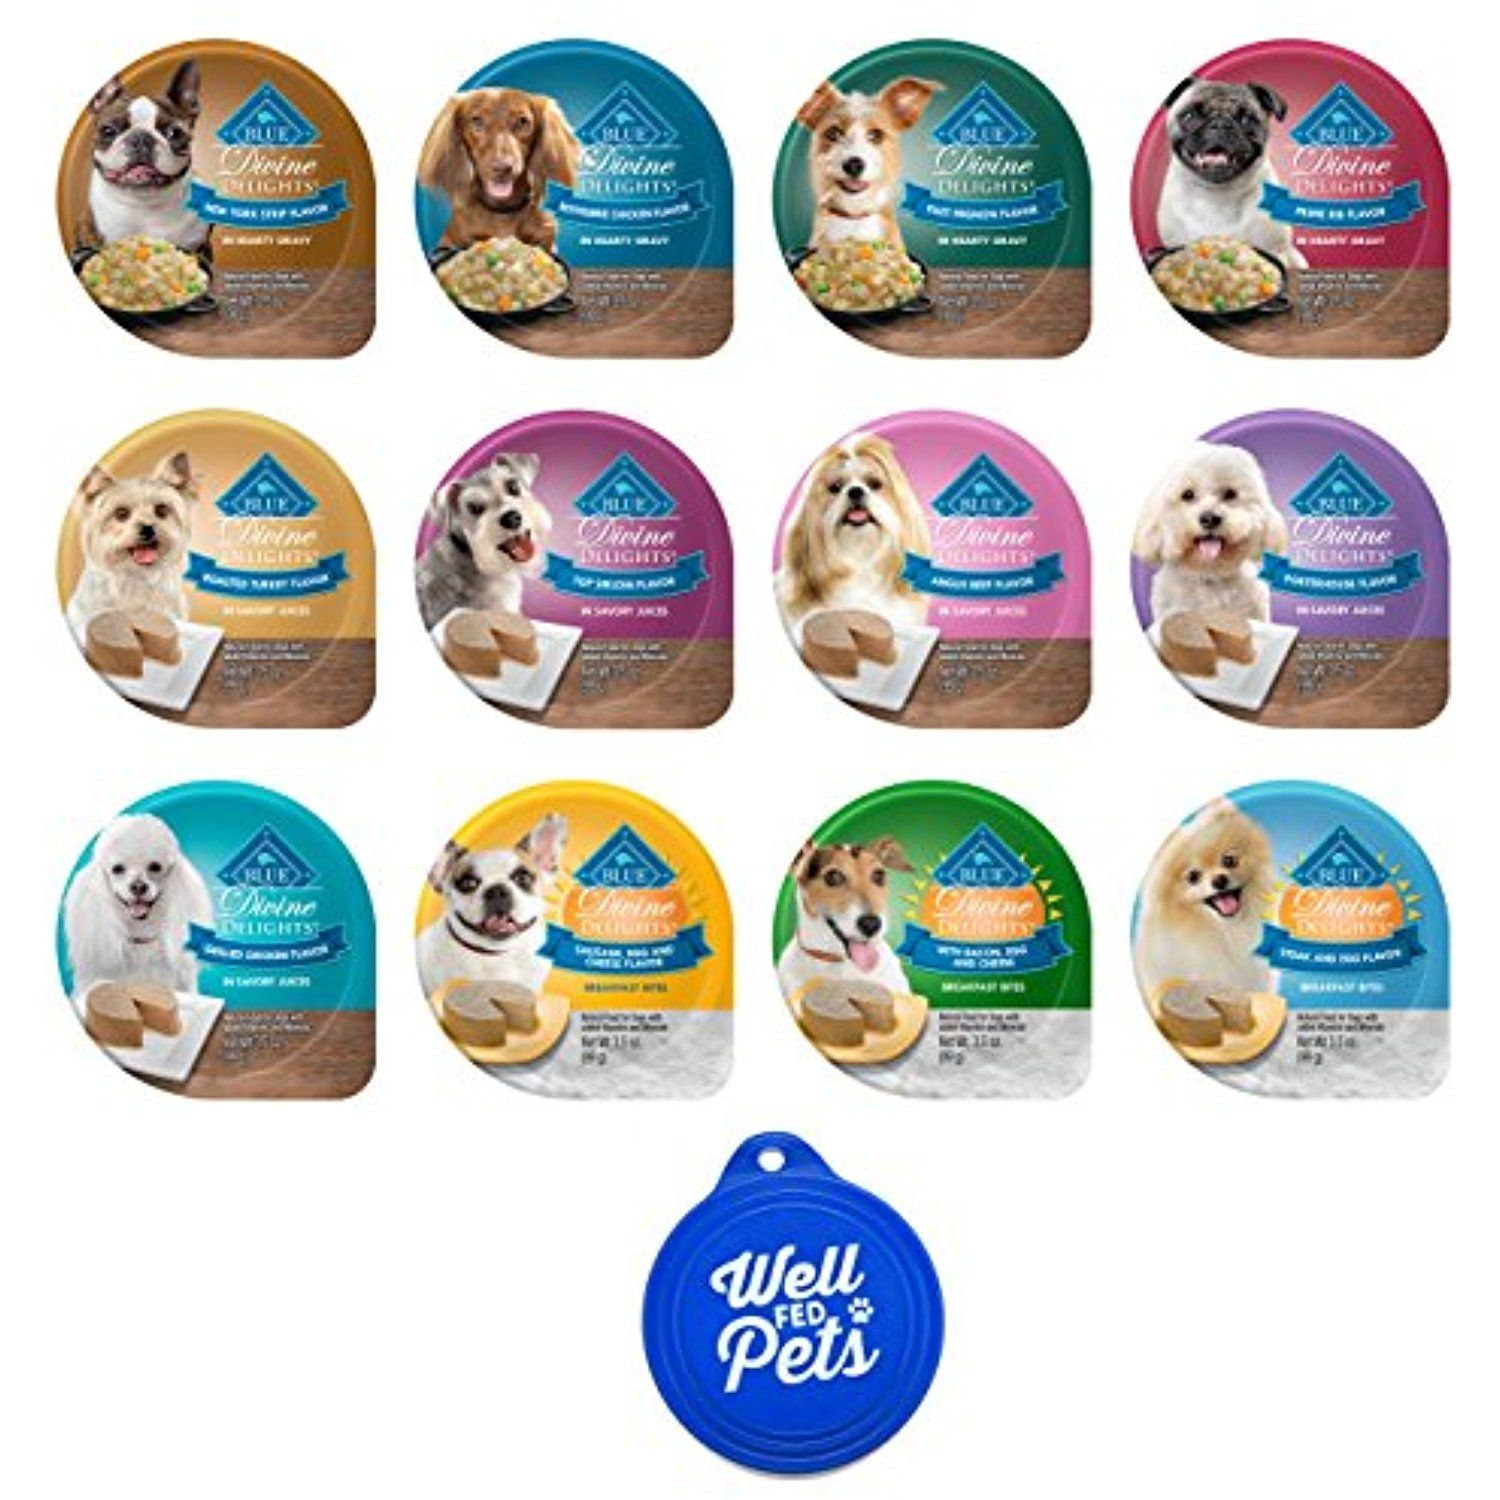 Blue Buffalo Divine Delights Dog Food Tubs Variety Pack 12